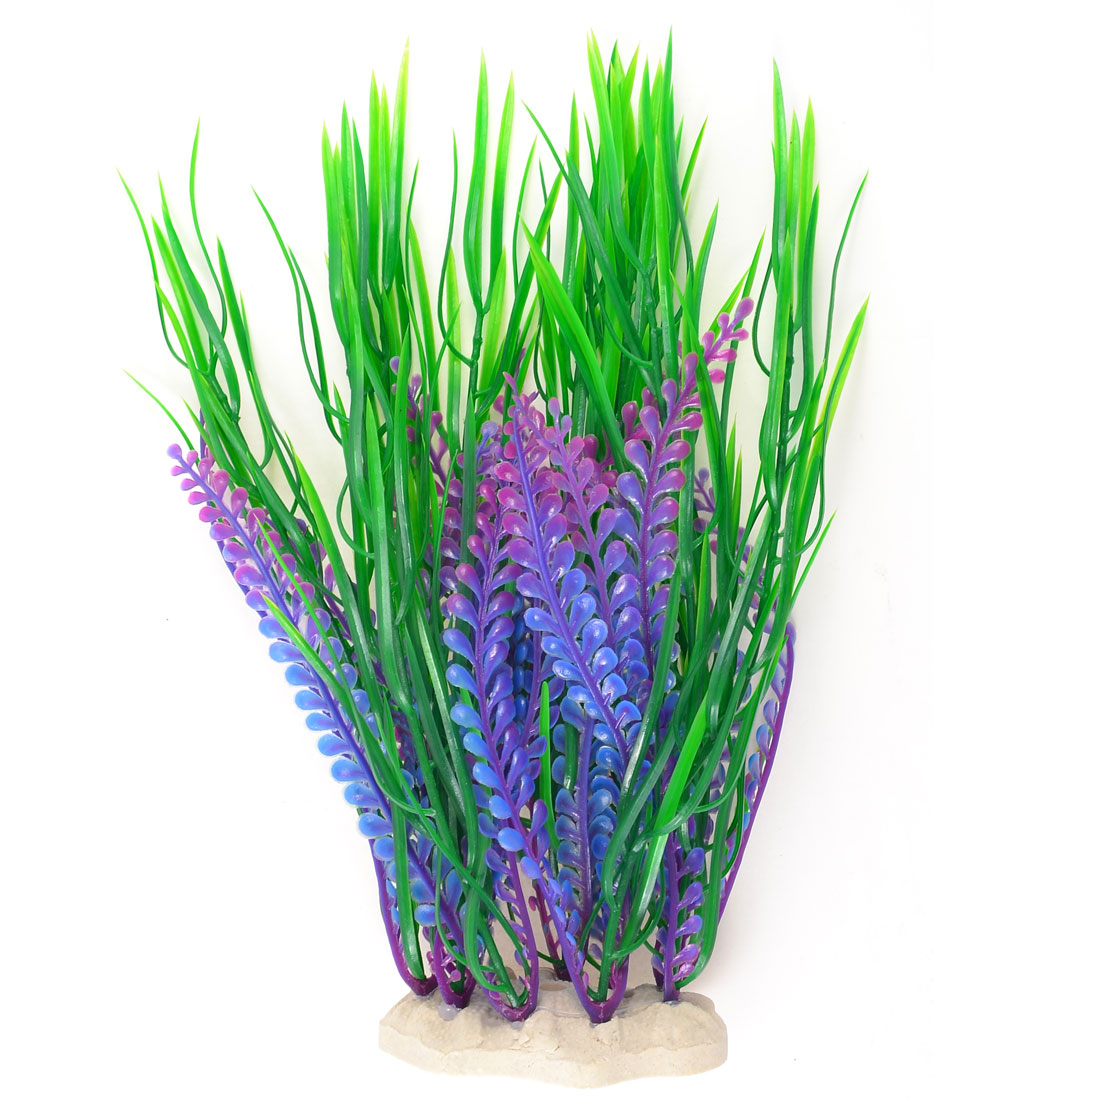 "10.4"" High Fish Tank Decor Artificial Water Grass Plants Green Purple"